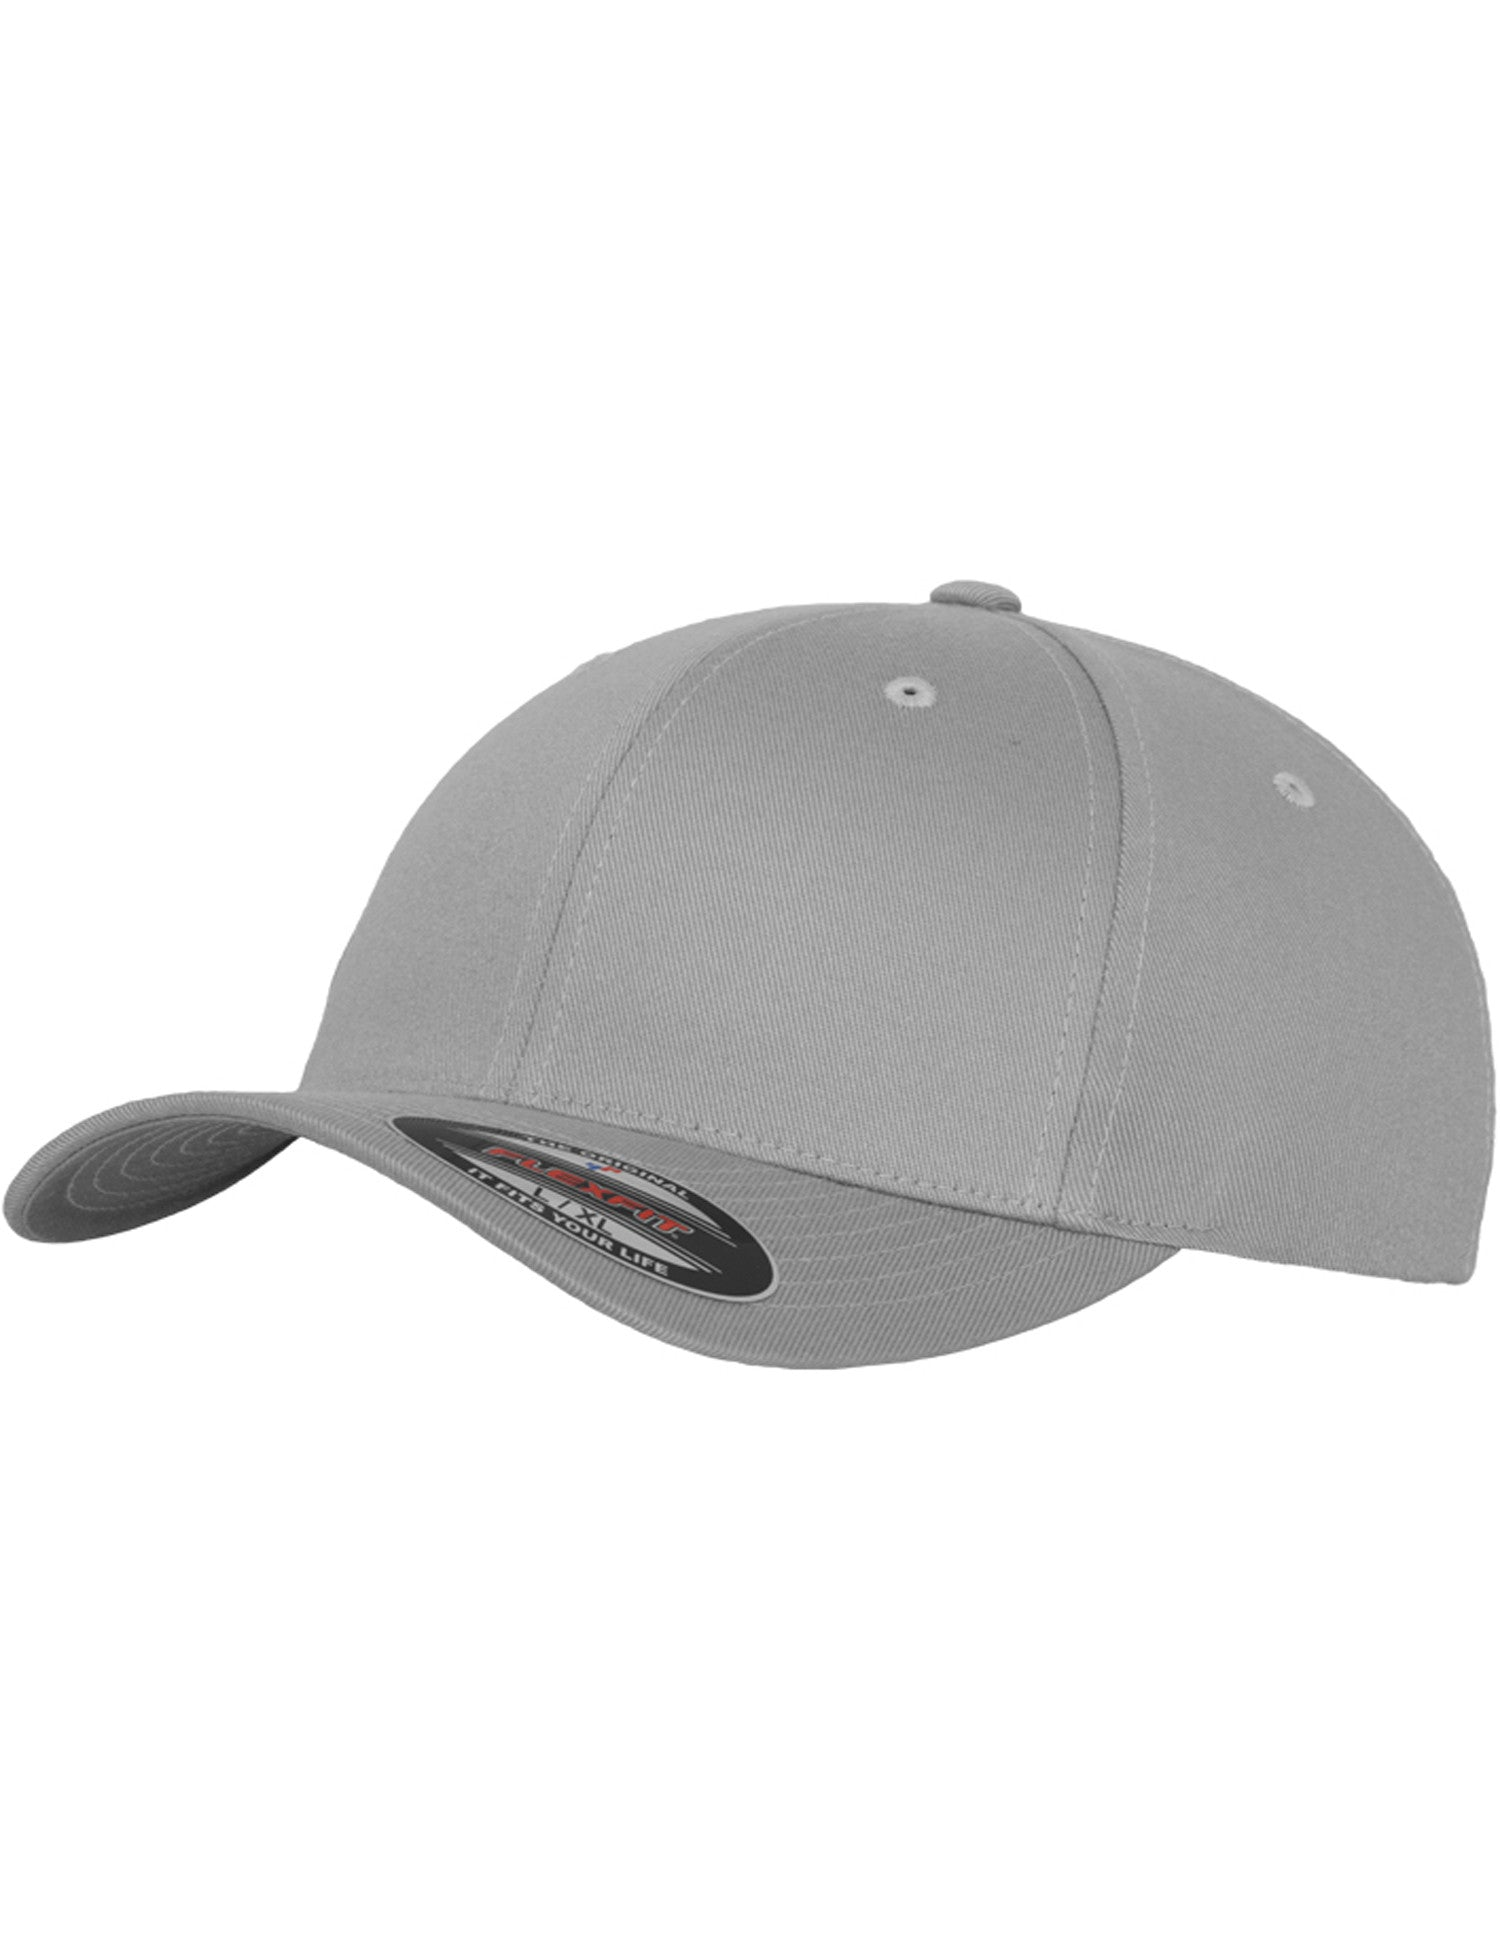 FLEXFIT WOOLY COMBED CAPS Silver